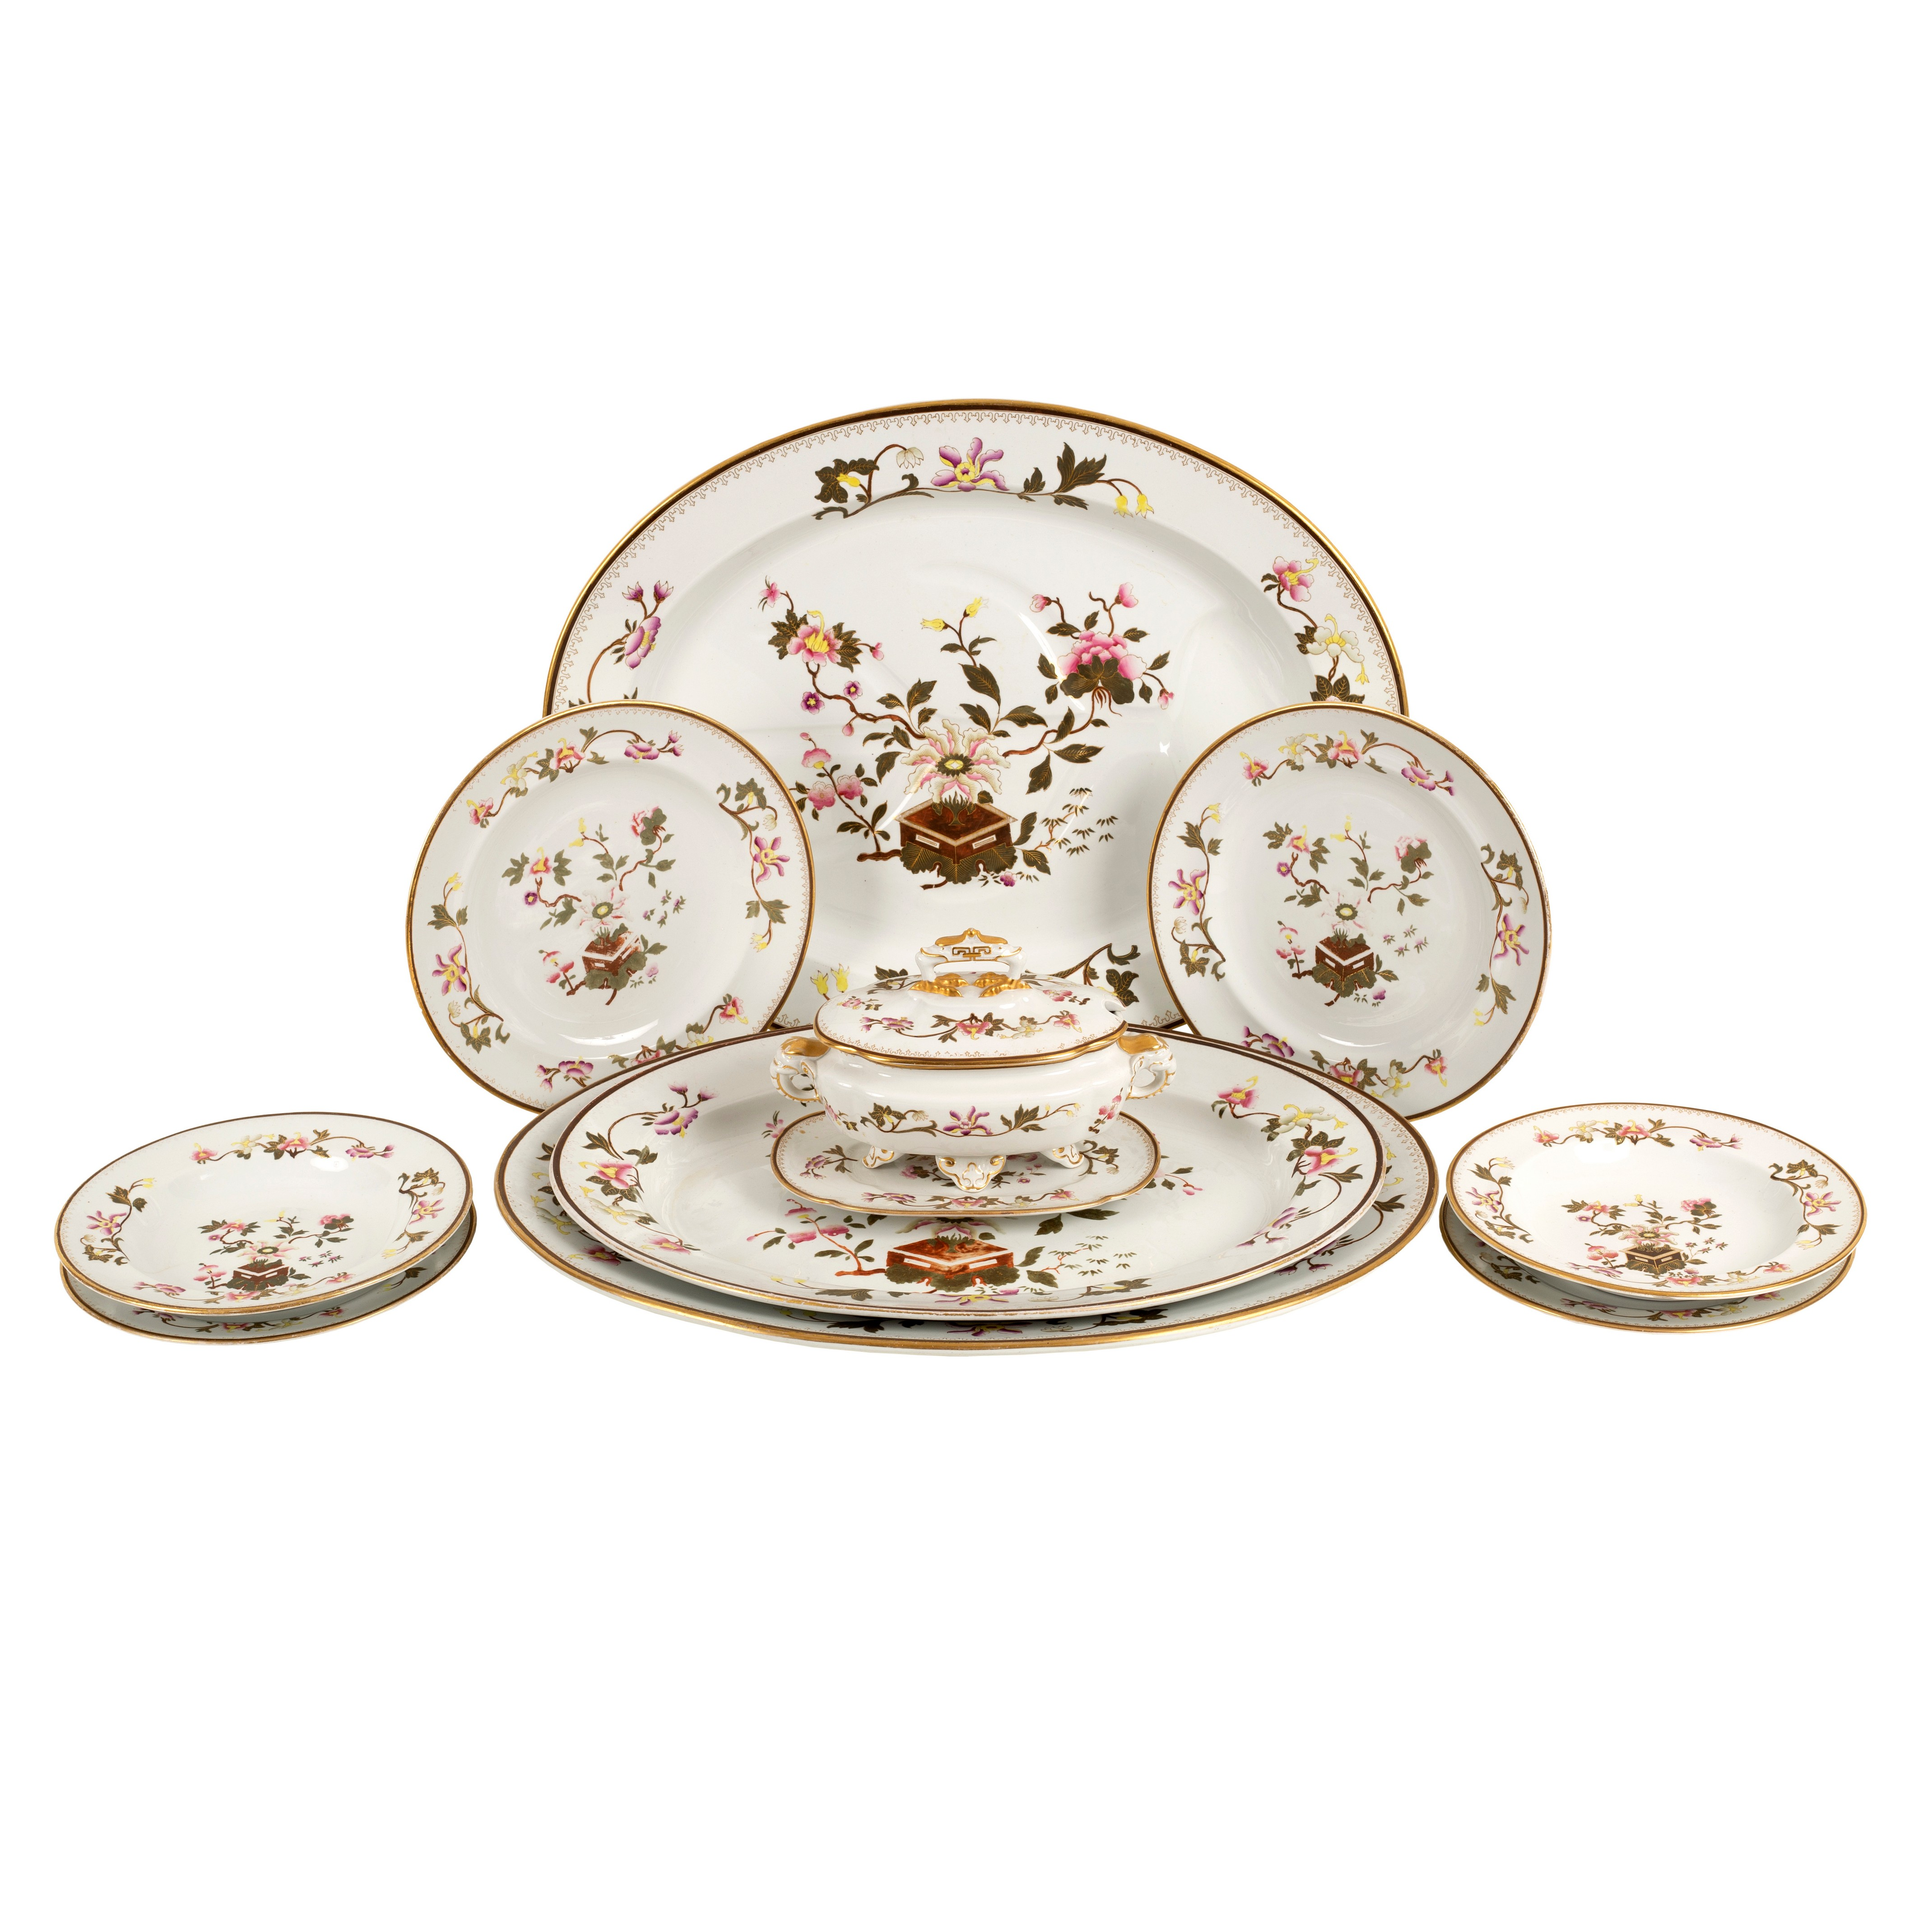 Lot 202 - A Royal Worcester part dinner service, decorated chinoiserie flowers and gilt,